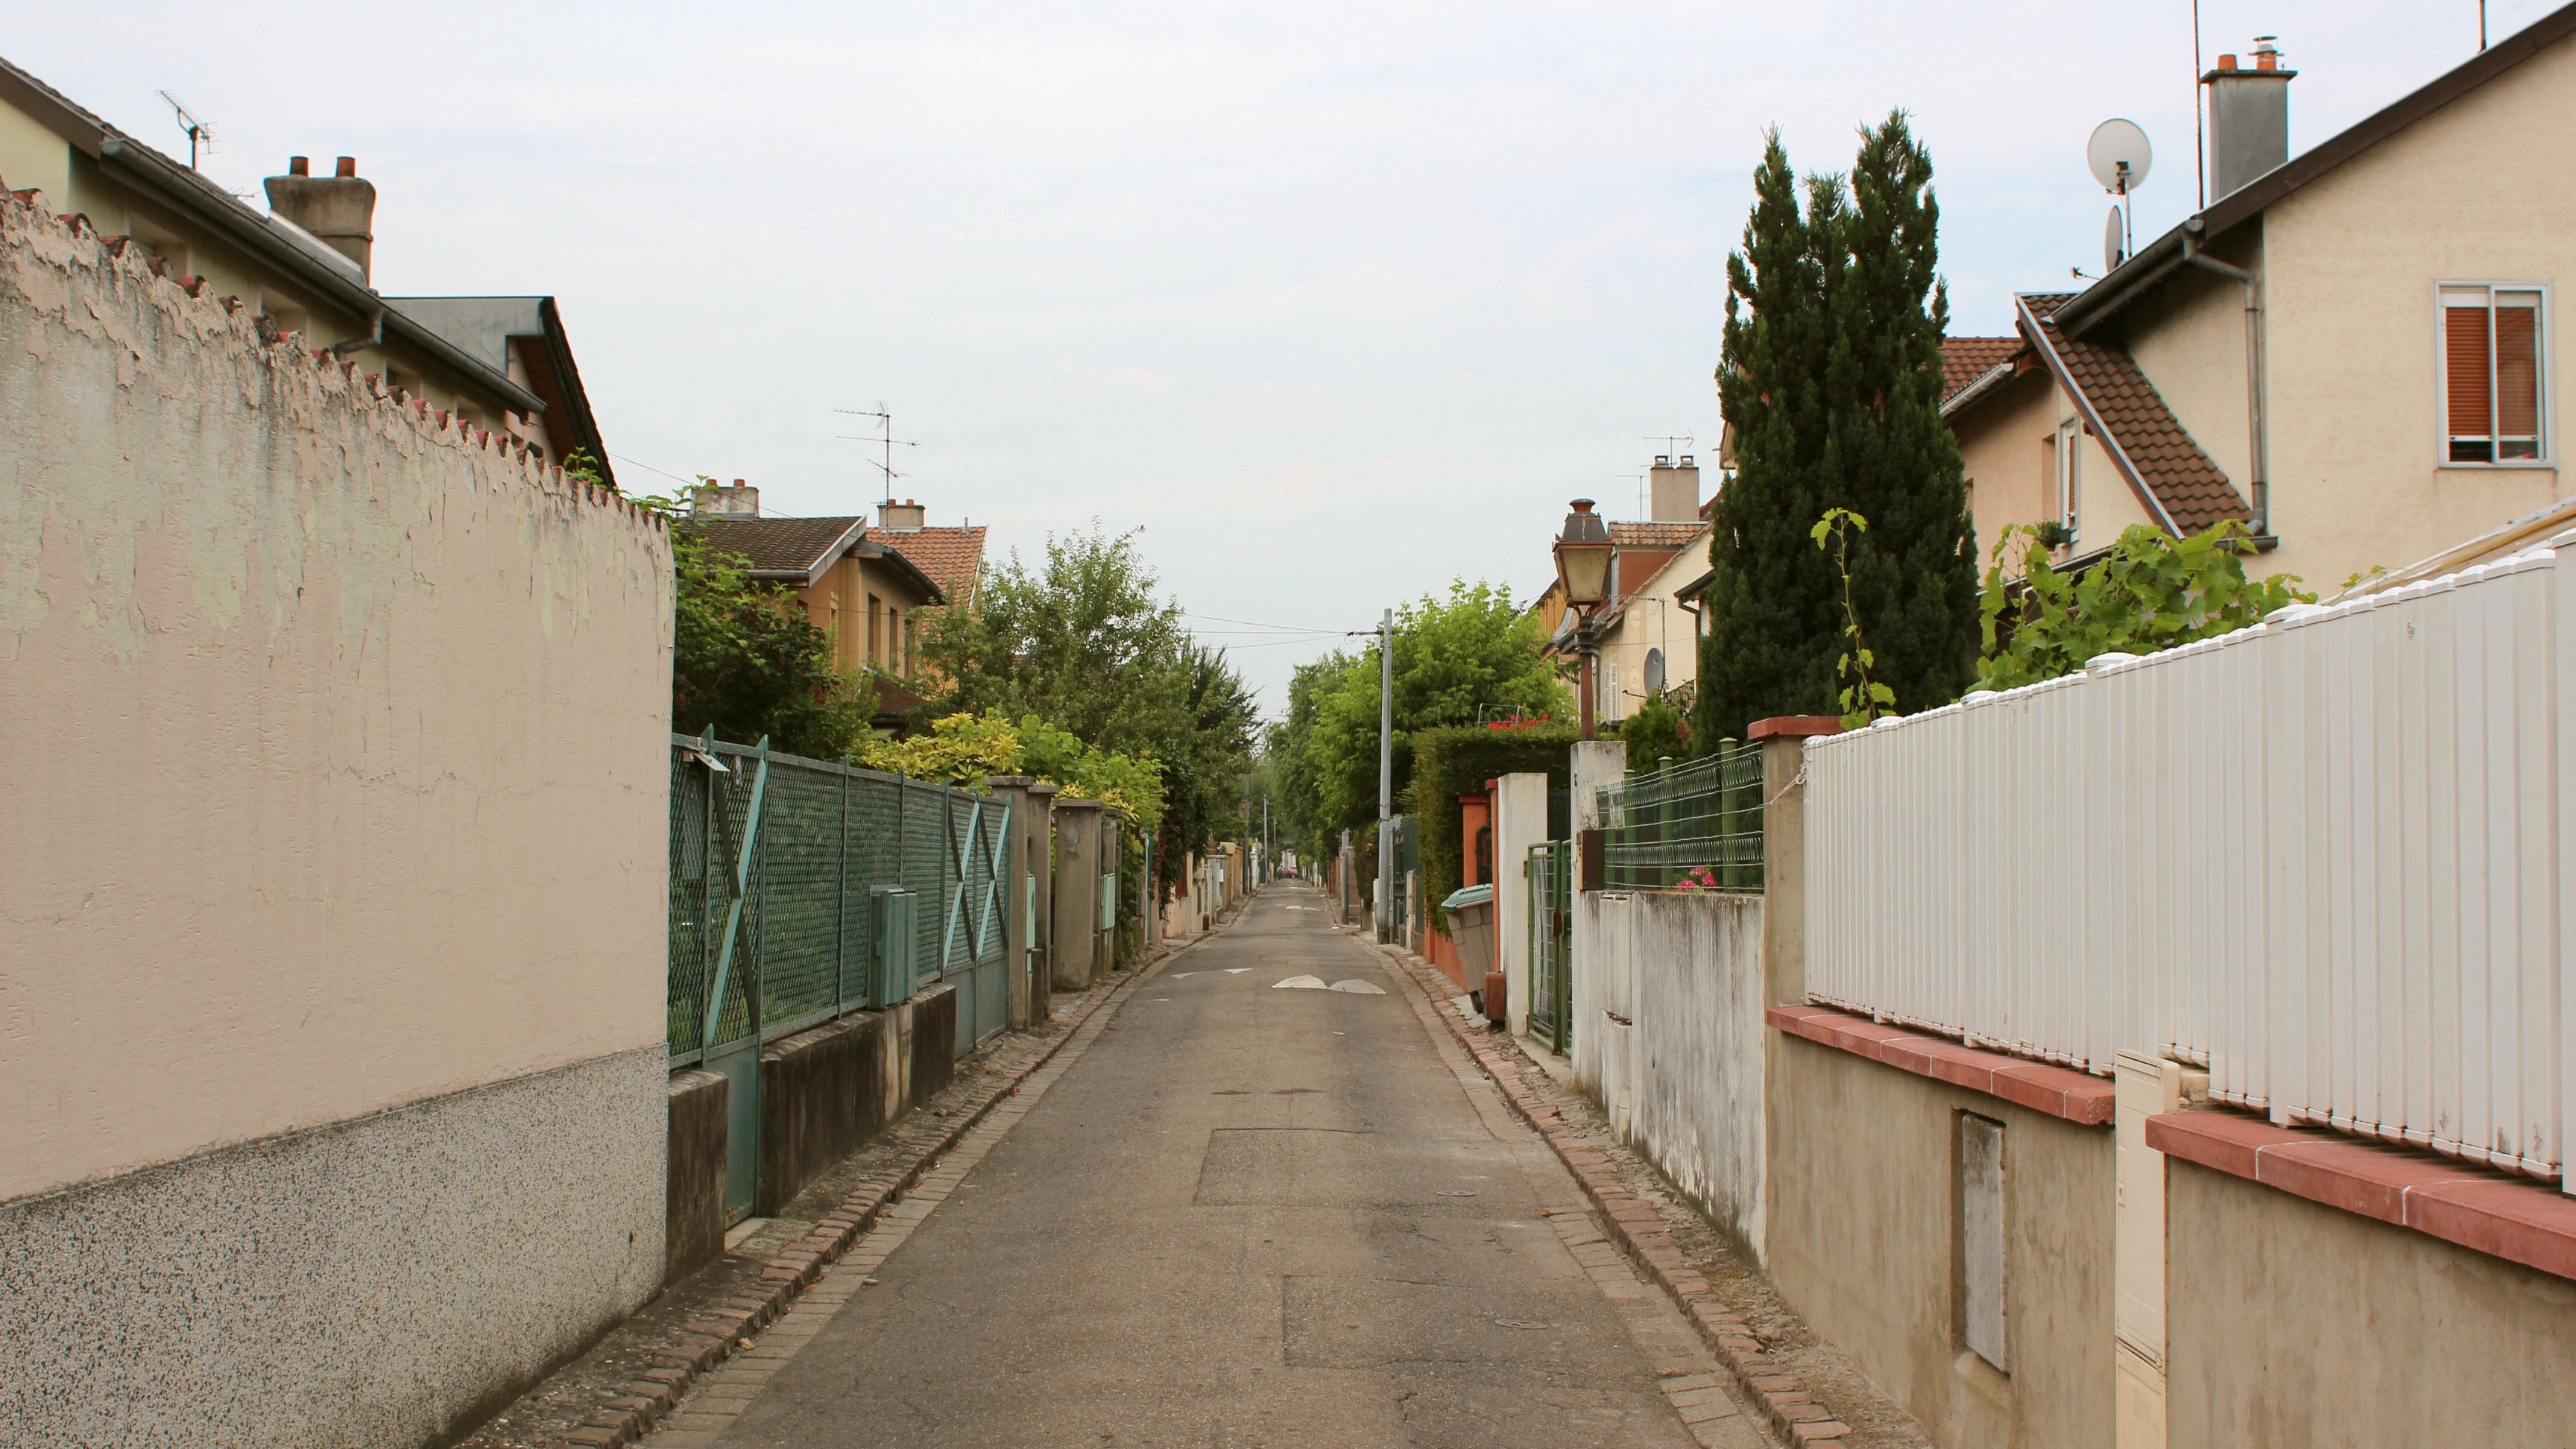 gray concrete walkway surrounded by houses during daytime